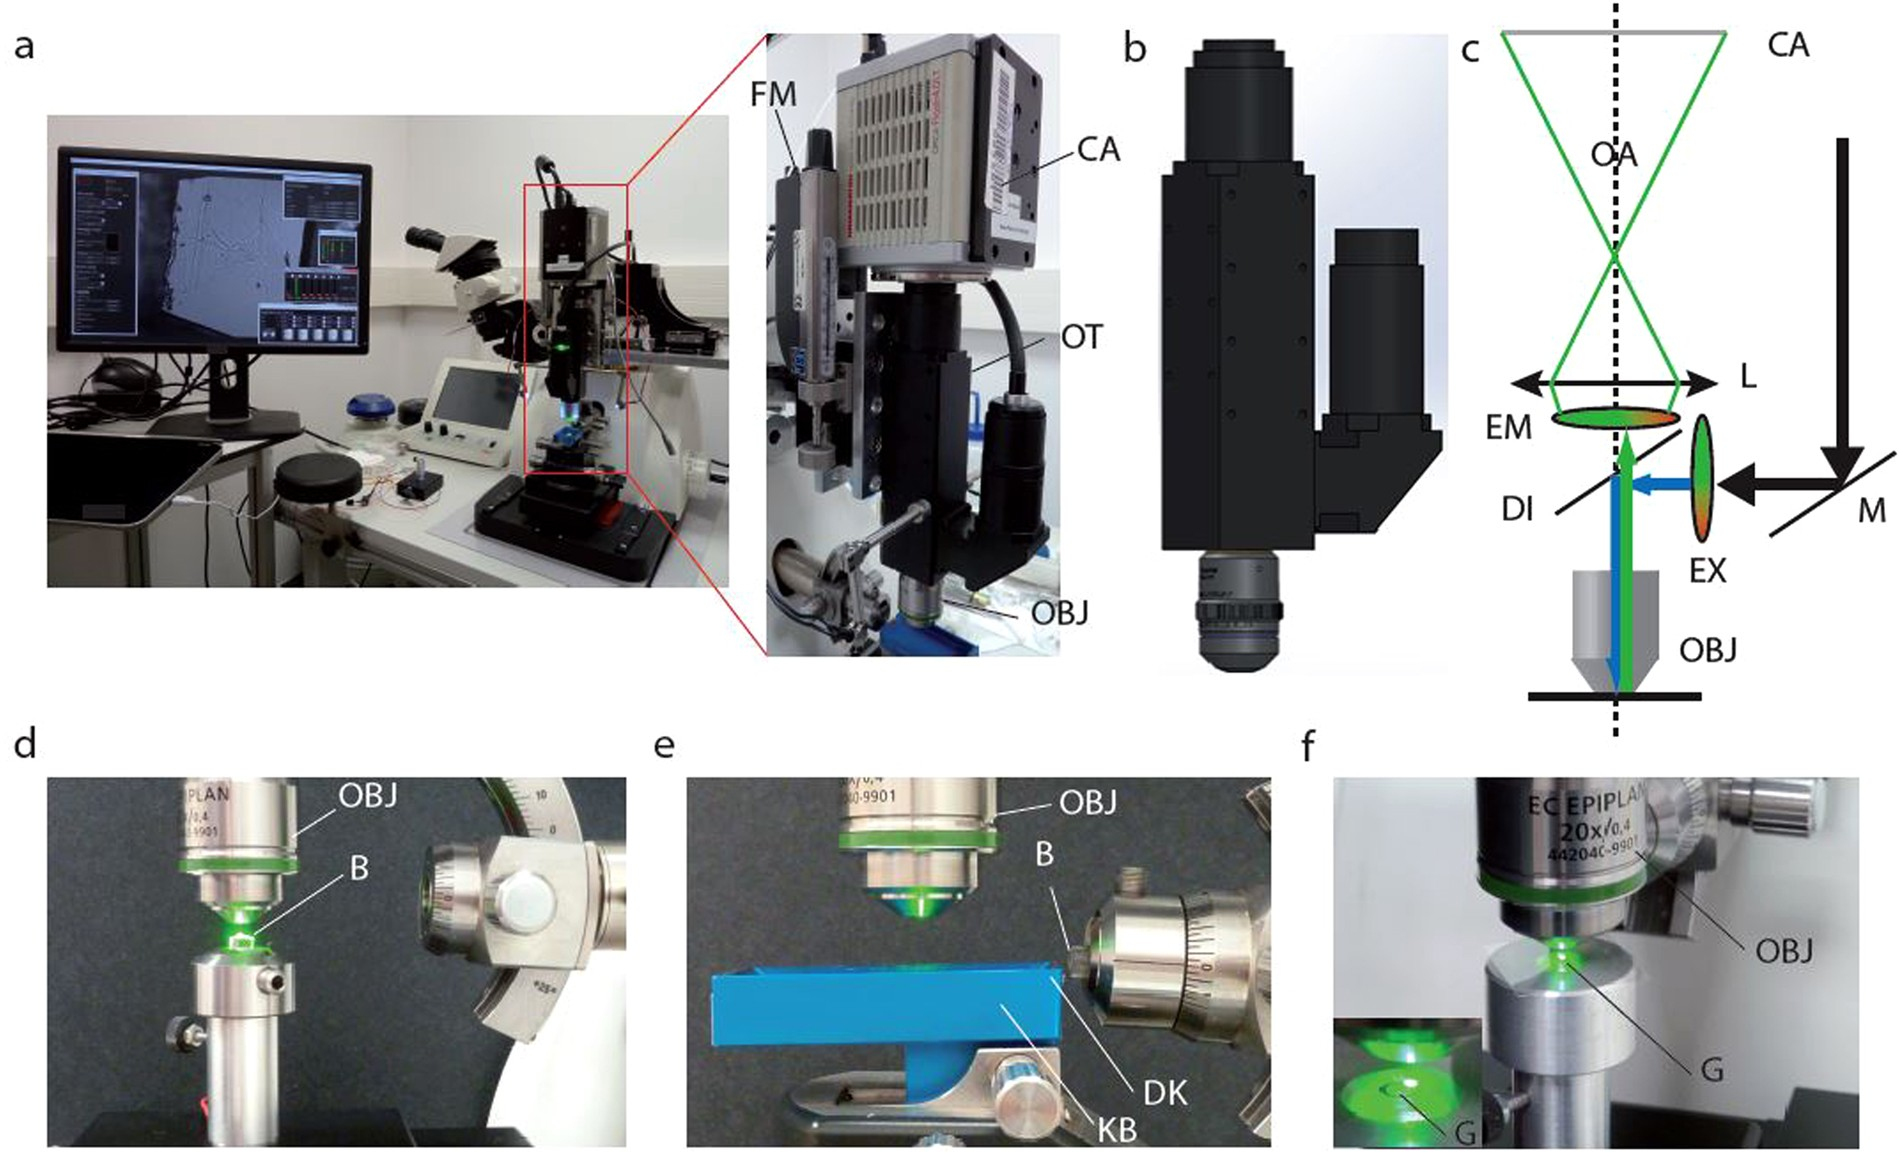 Microtome-integrated microscope system for high sensitivity tracking